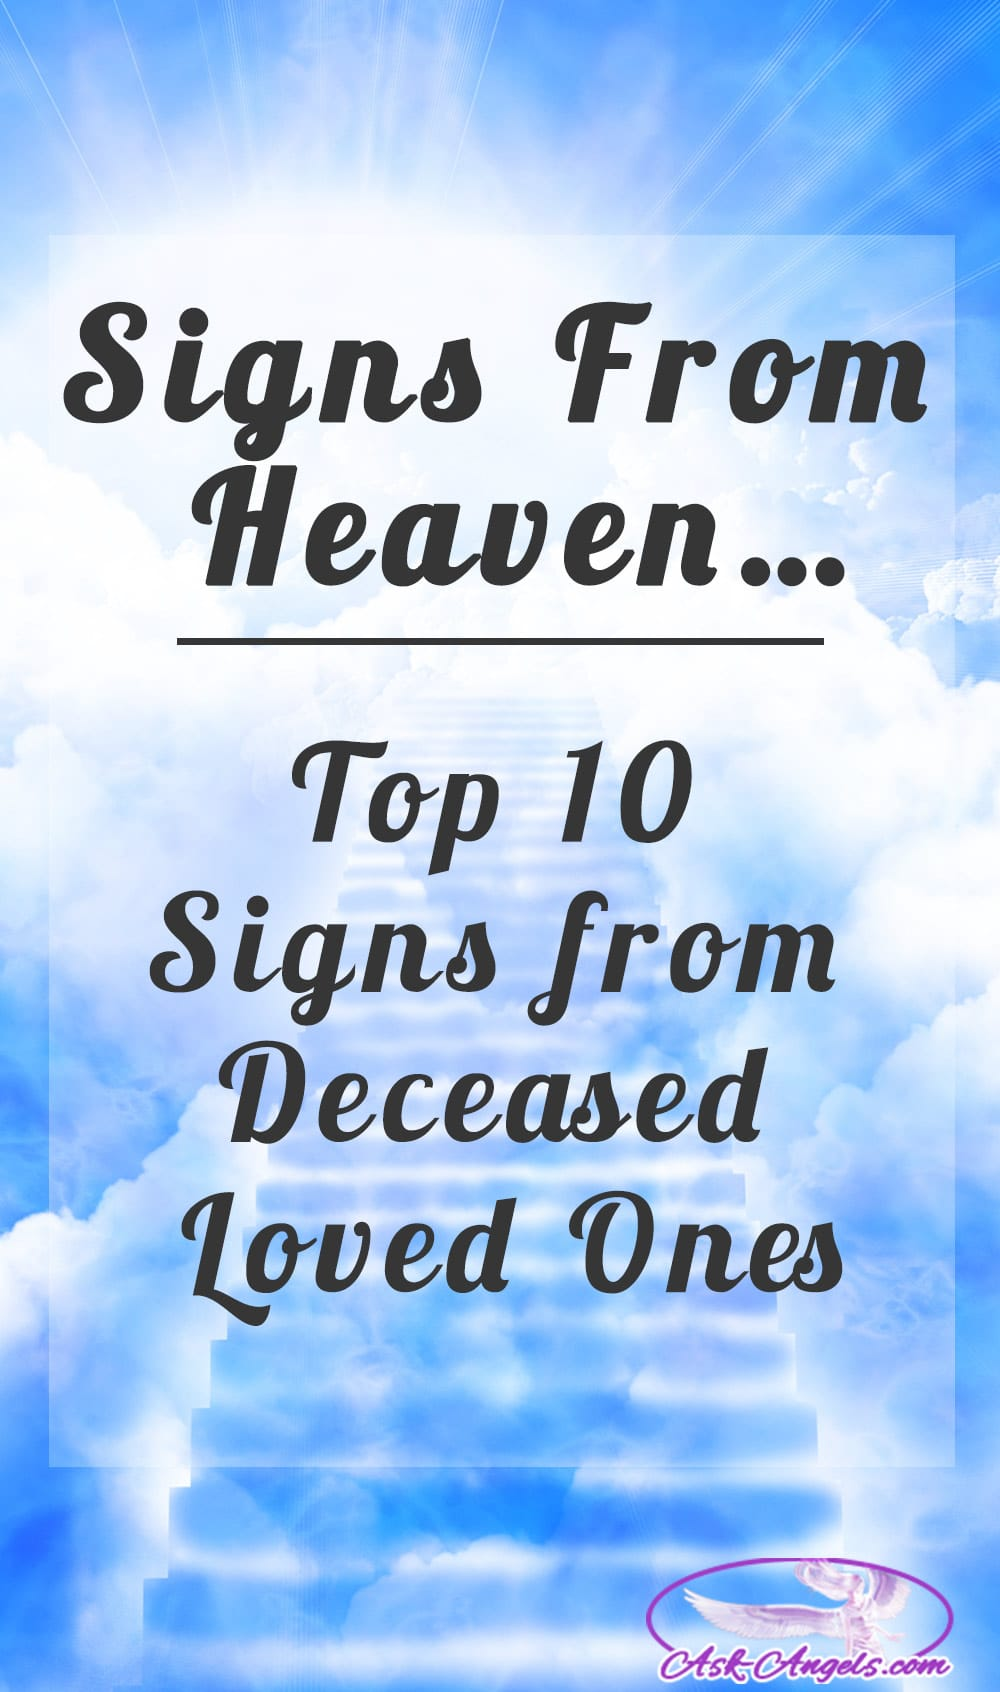 Signs from heaven top 9 signs from deceased loved ones ask angels 2 strange electrical occurrences biocorpaavc Image collections